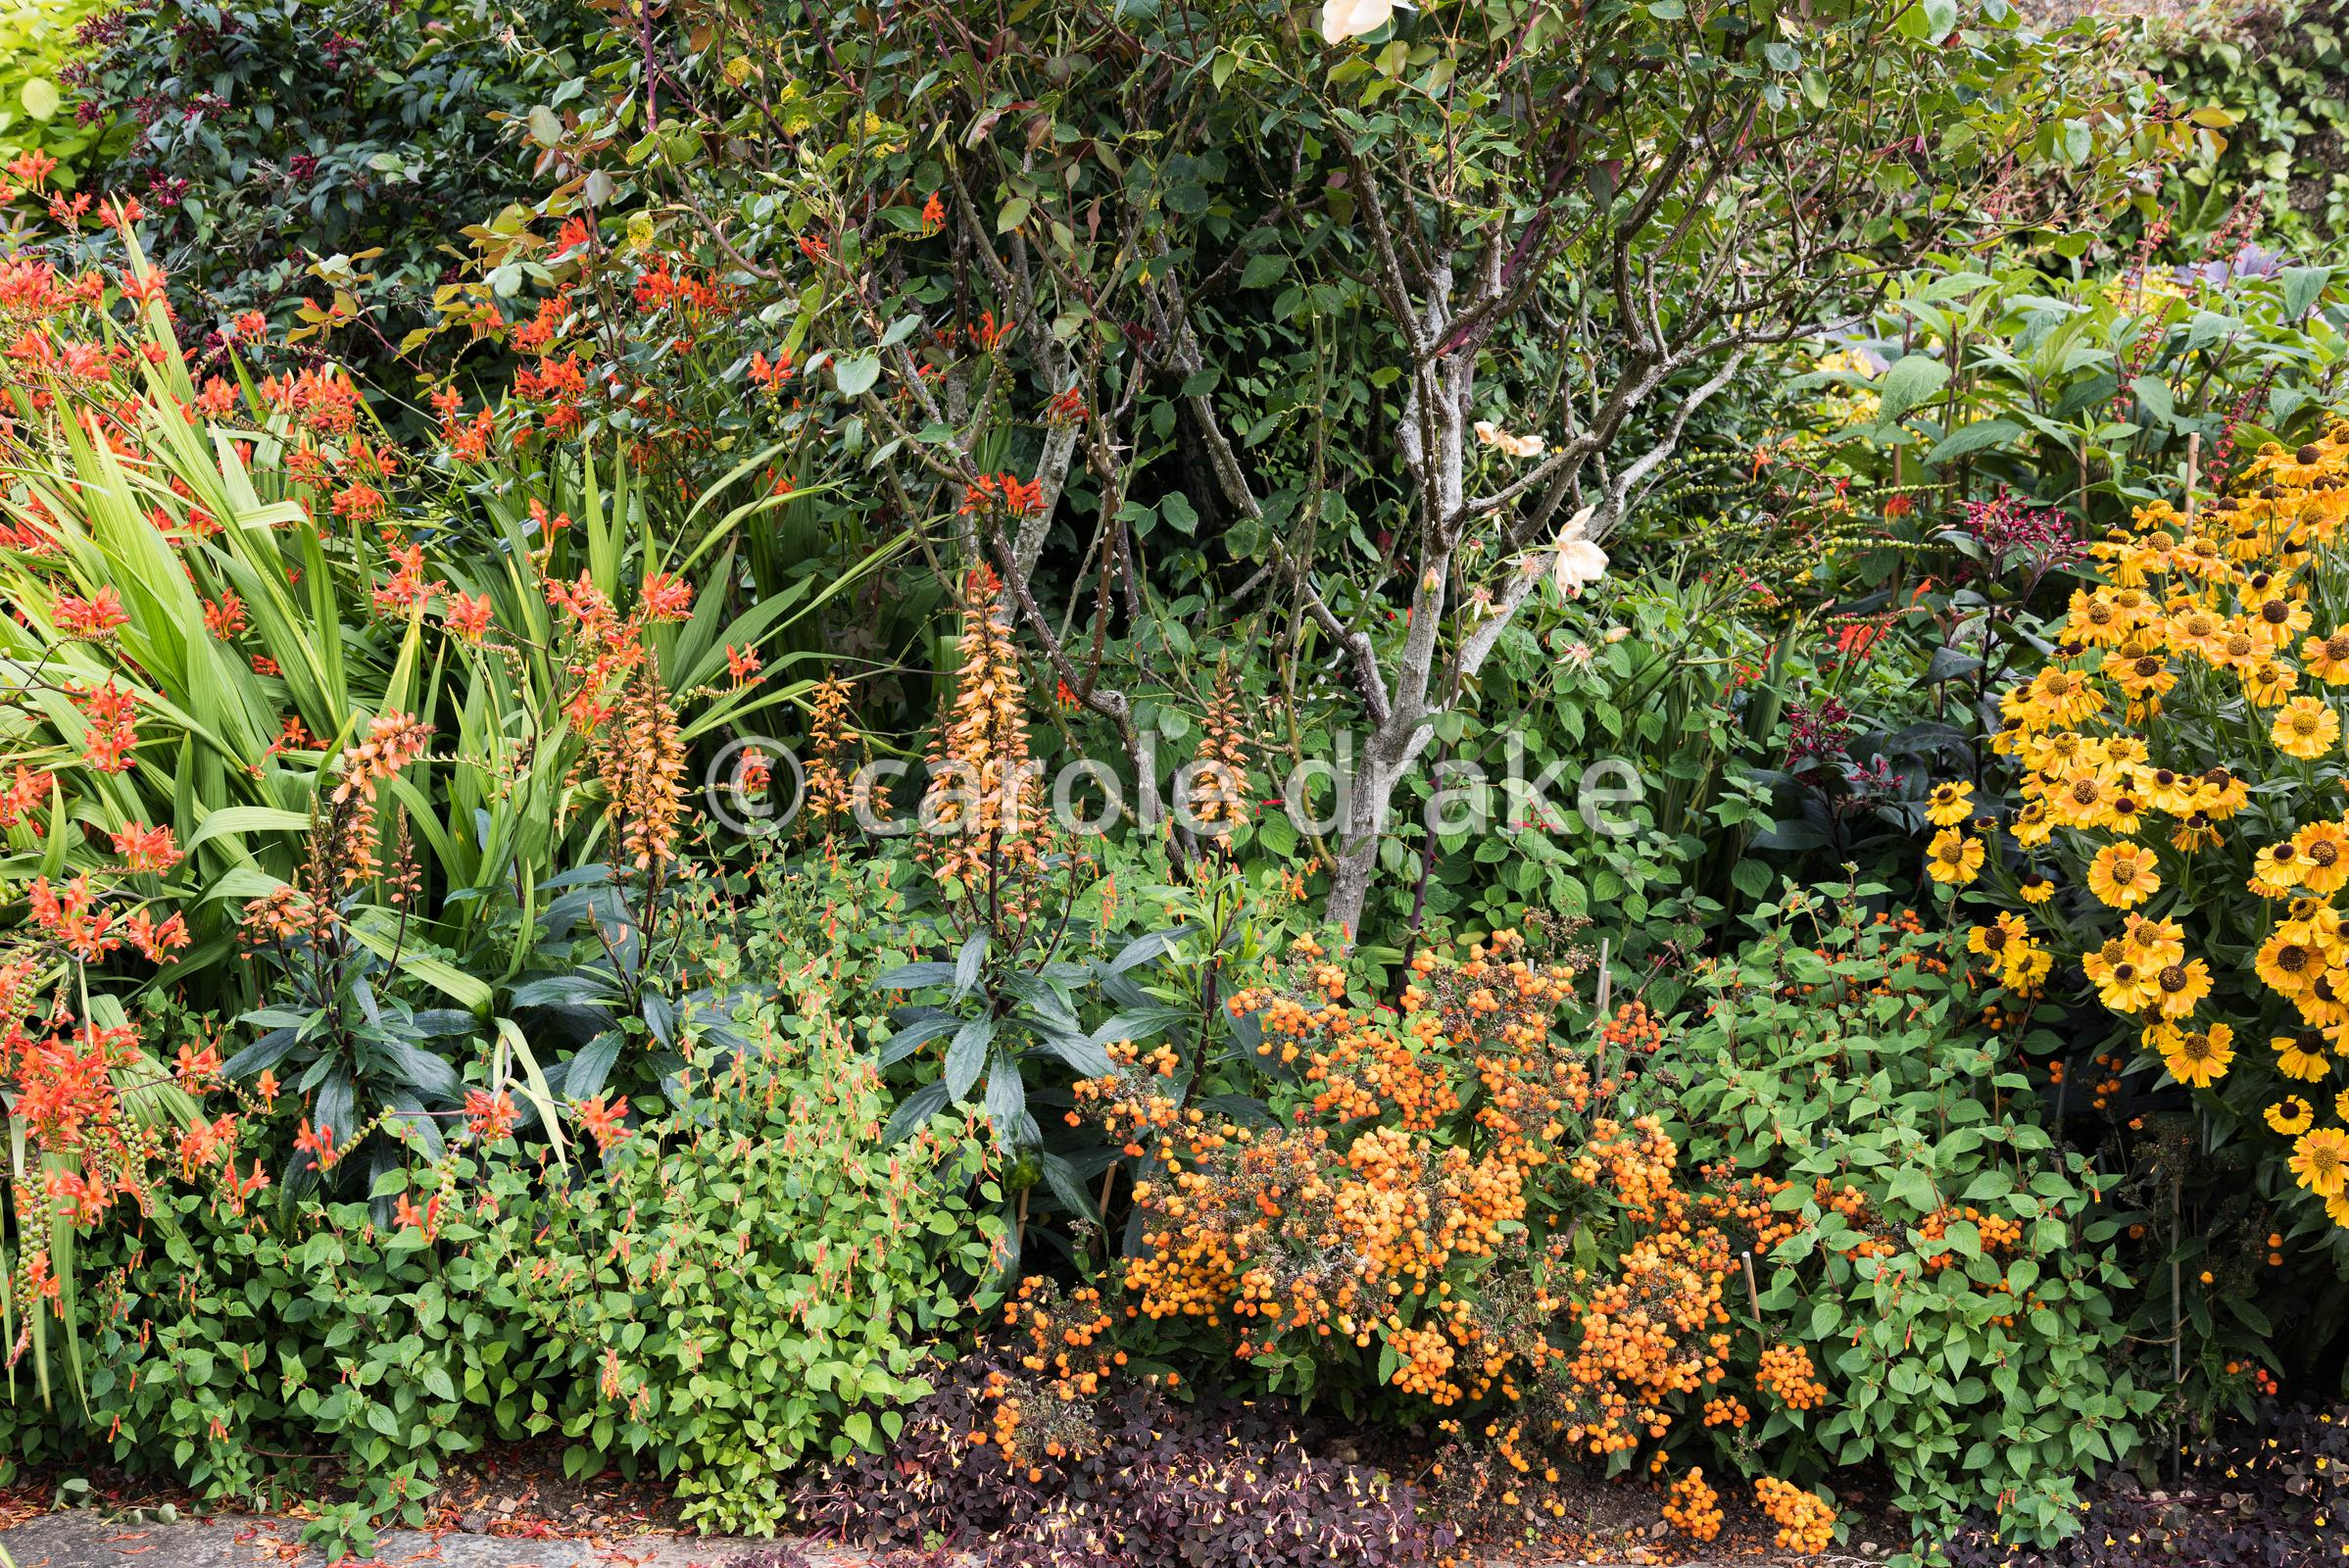 Late summer border at Bourton House, Moreton-in-Marsh in August with Digitalis canariensis, Cuphea cyanea, Calceolaria integr...